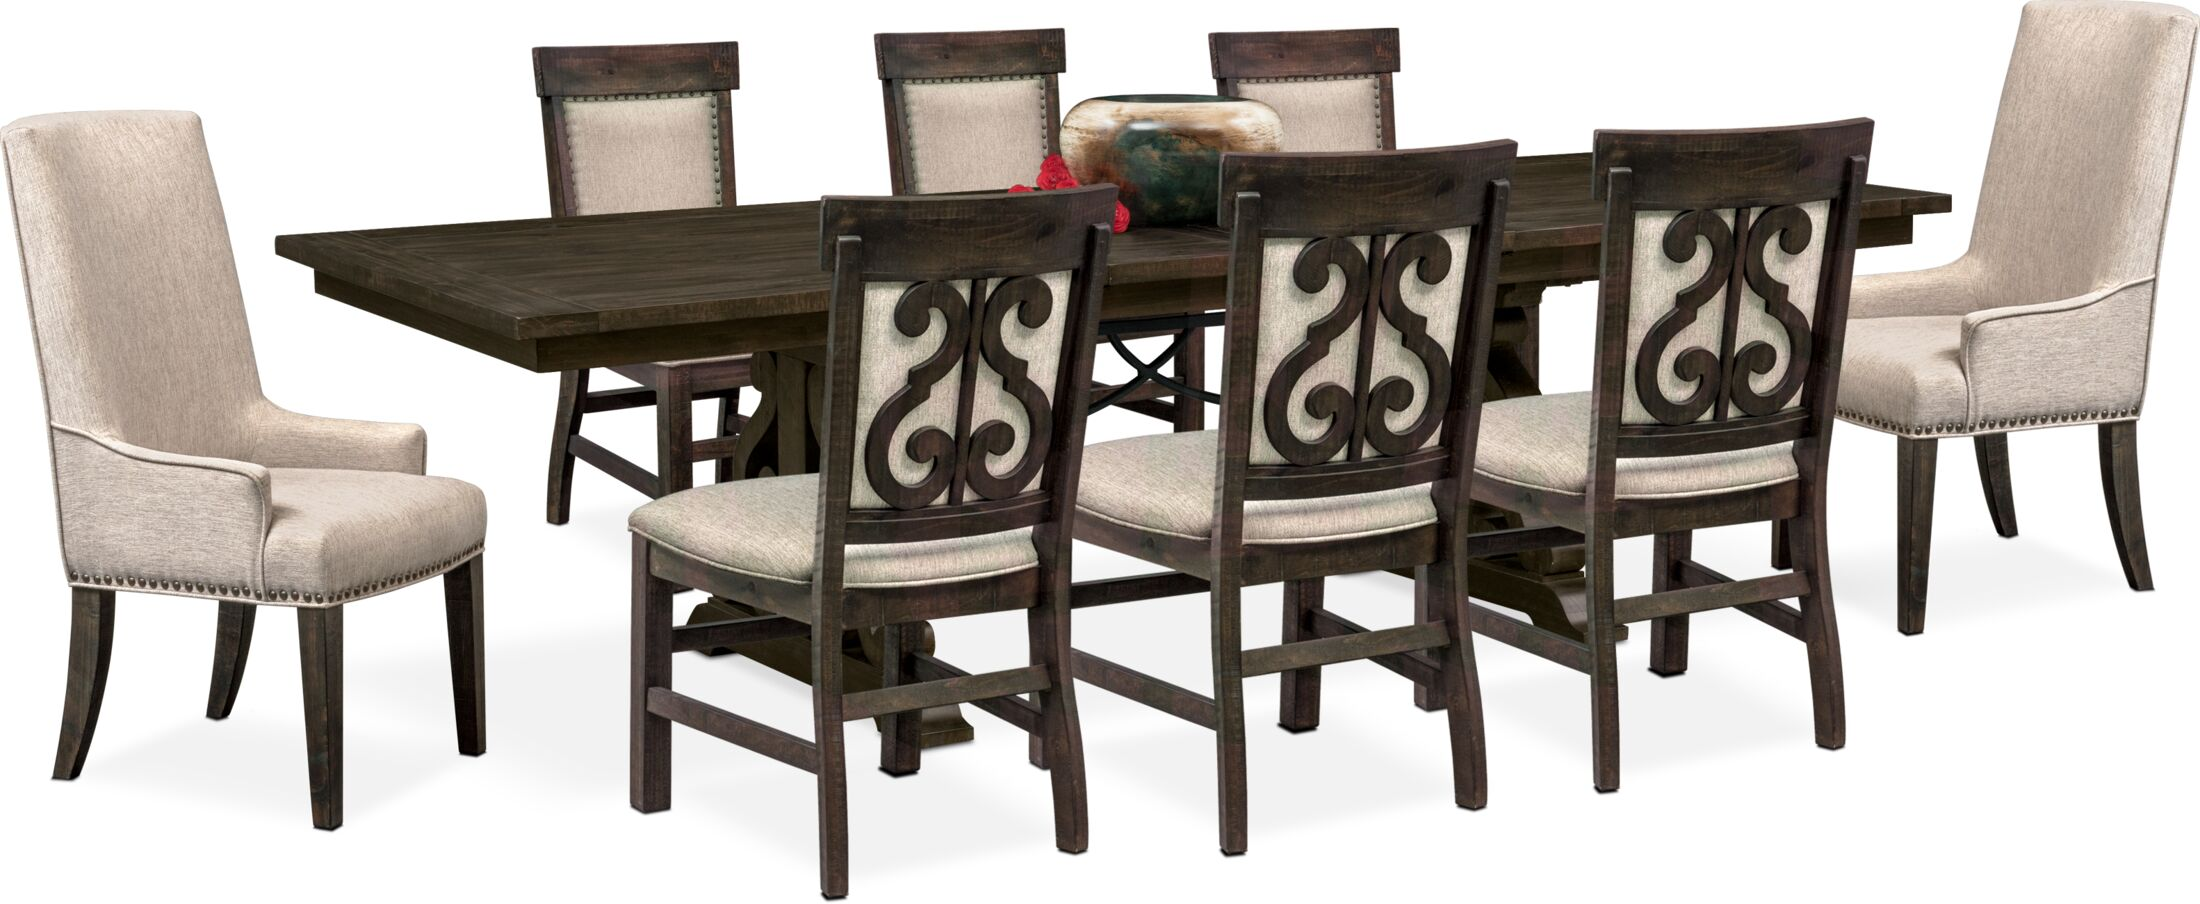 Dining Room Furniture - Charthouse Rectangular Dining Table, 2 Host Chairs and 6 Upholstered Dining Chairs